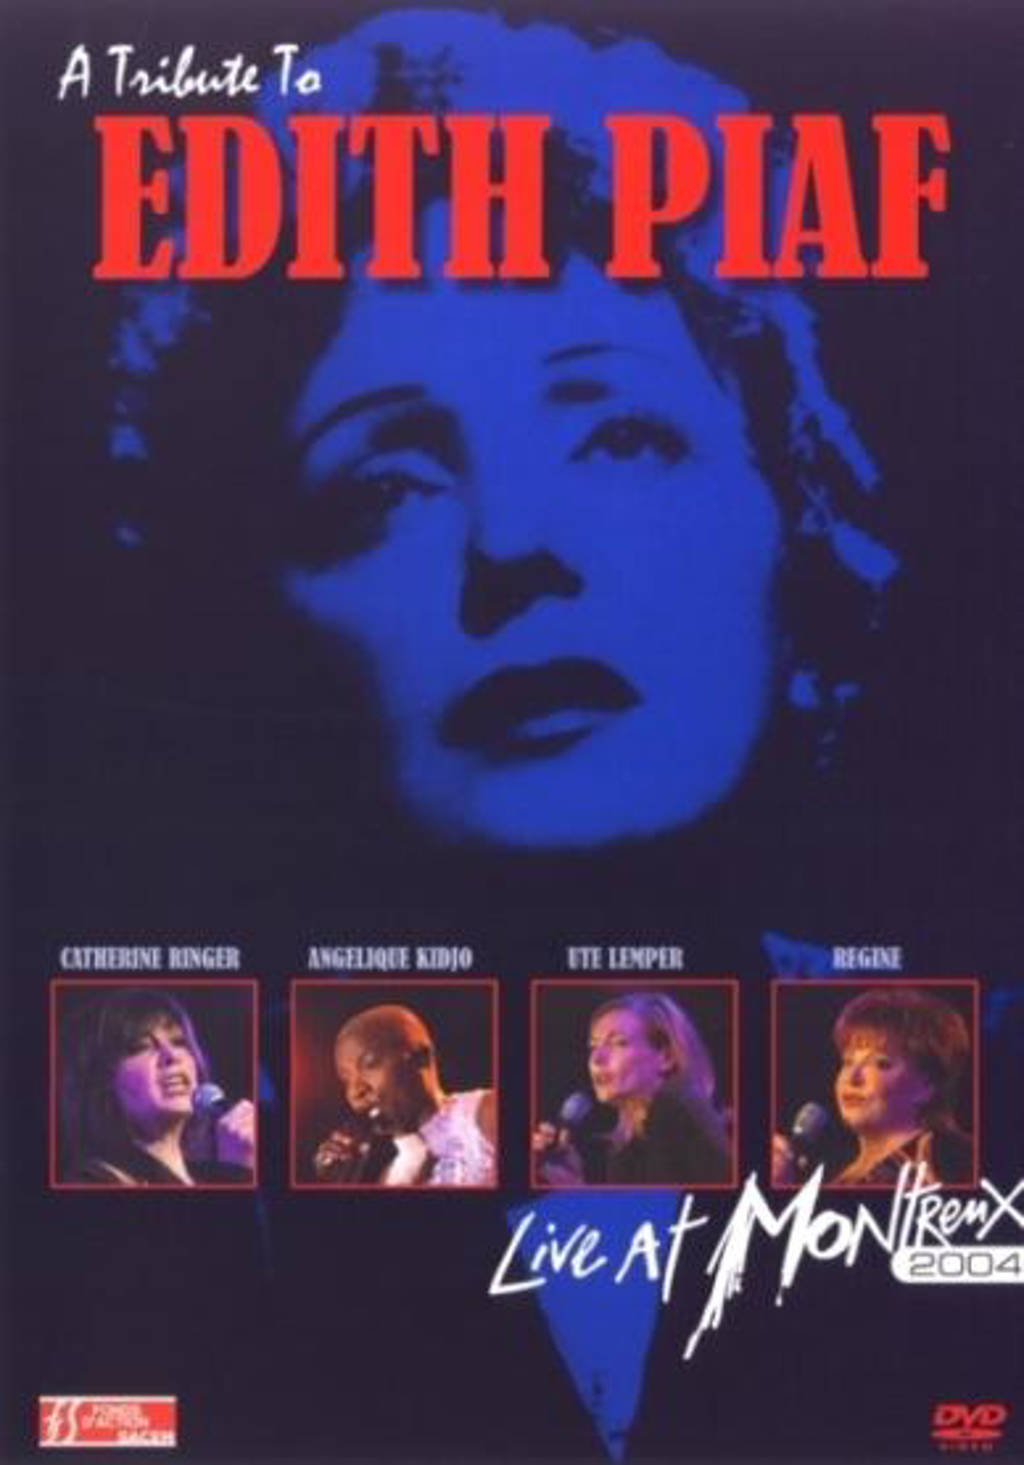 Tribute to Edith Piaf - live at Montreux 2004 (DVD)